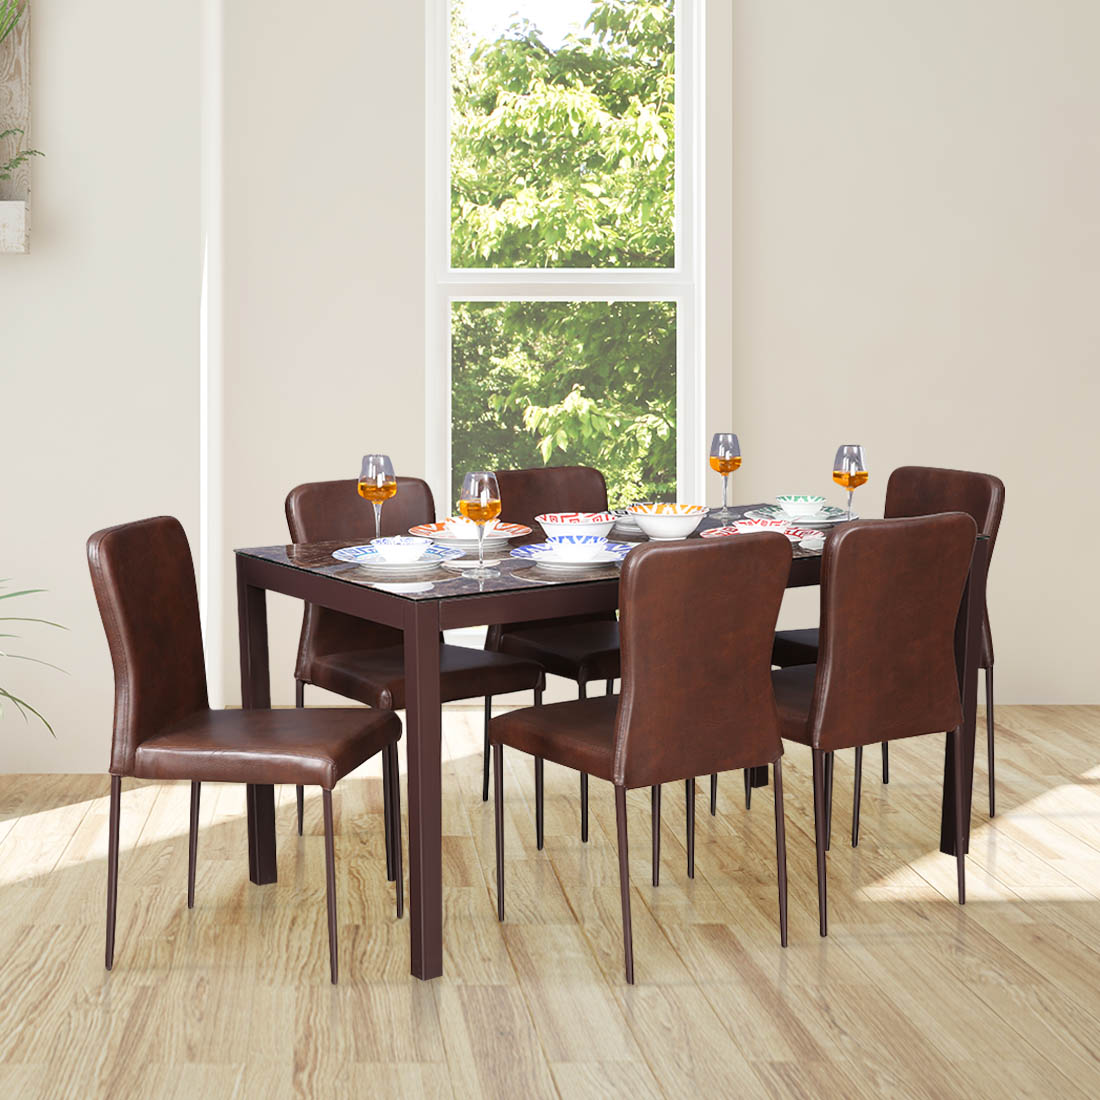 Modric Mild Steel Six Seater Dining Set in Brown Colour by HomeTown